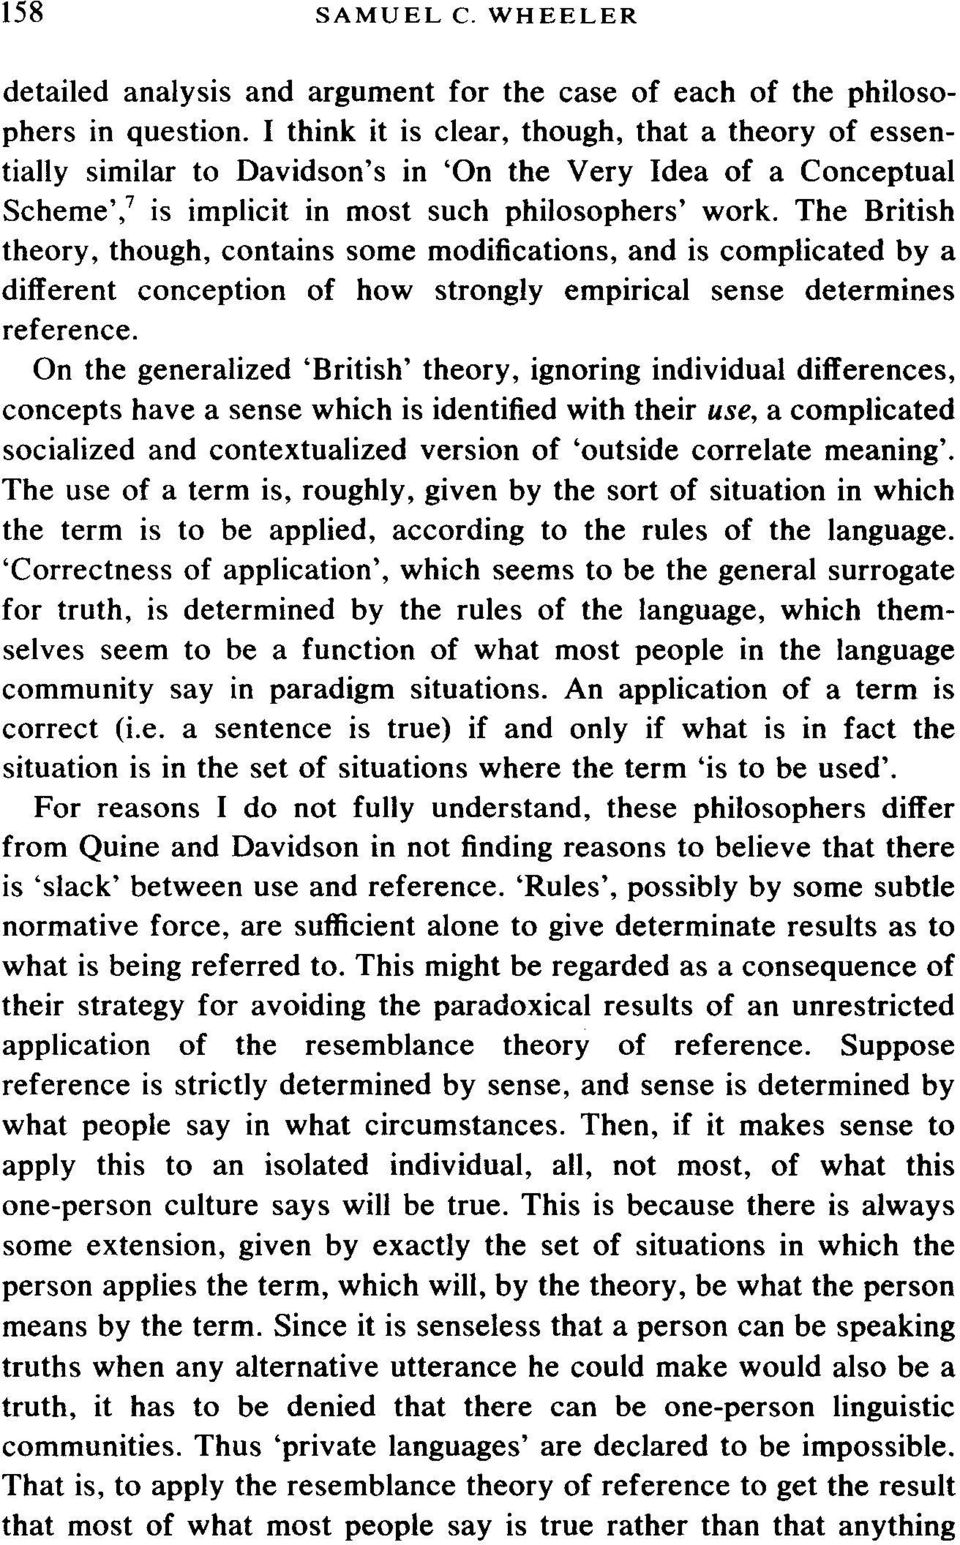 The British theory, though, contains some modifications, and is complicated by a different conception of how strongly empirical sense determines reference.